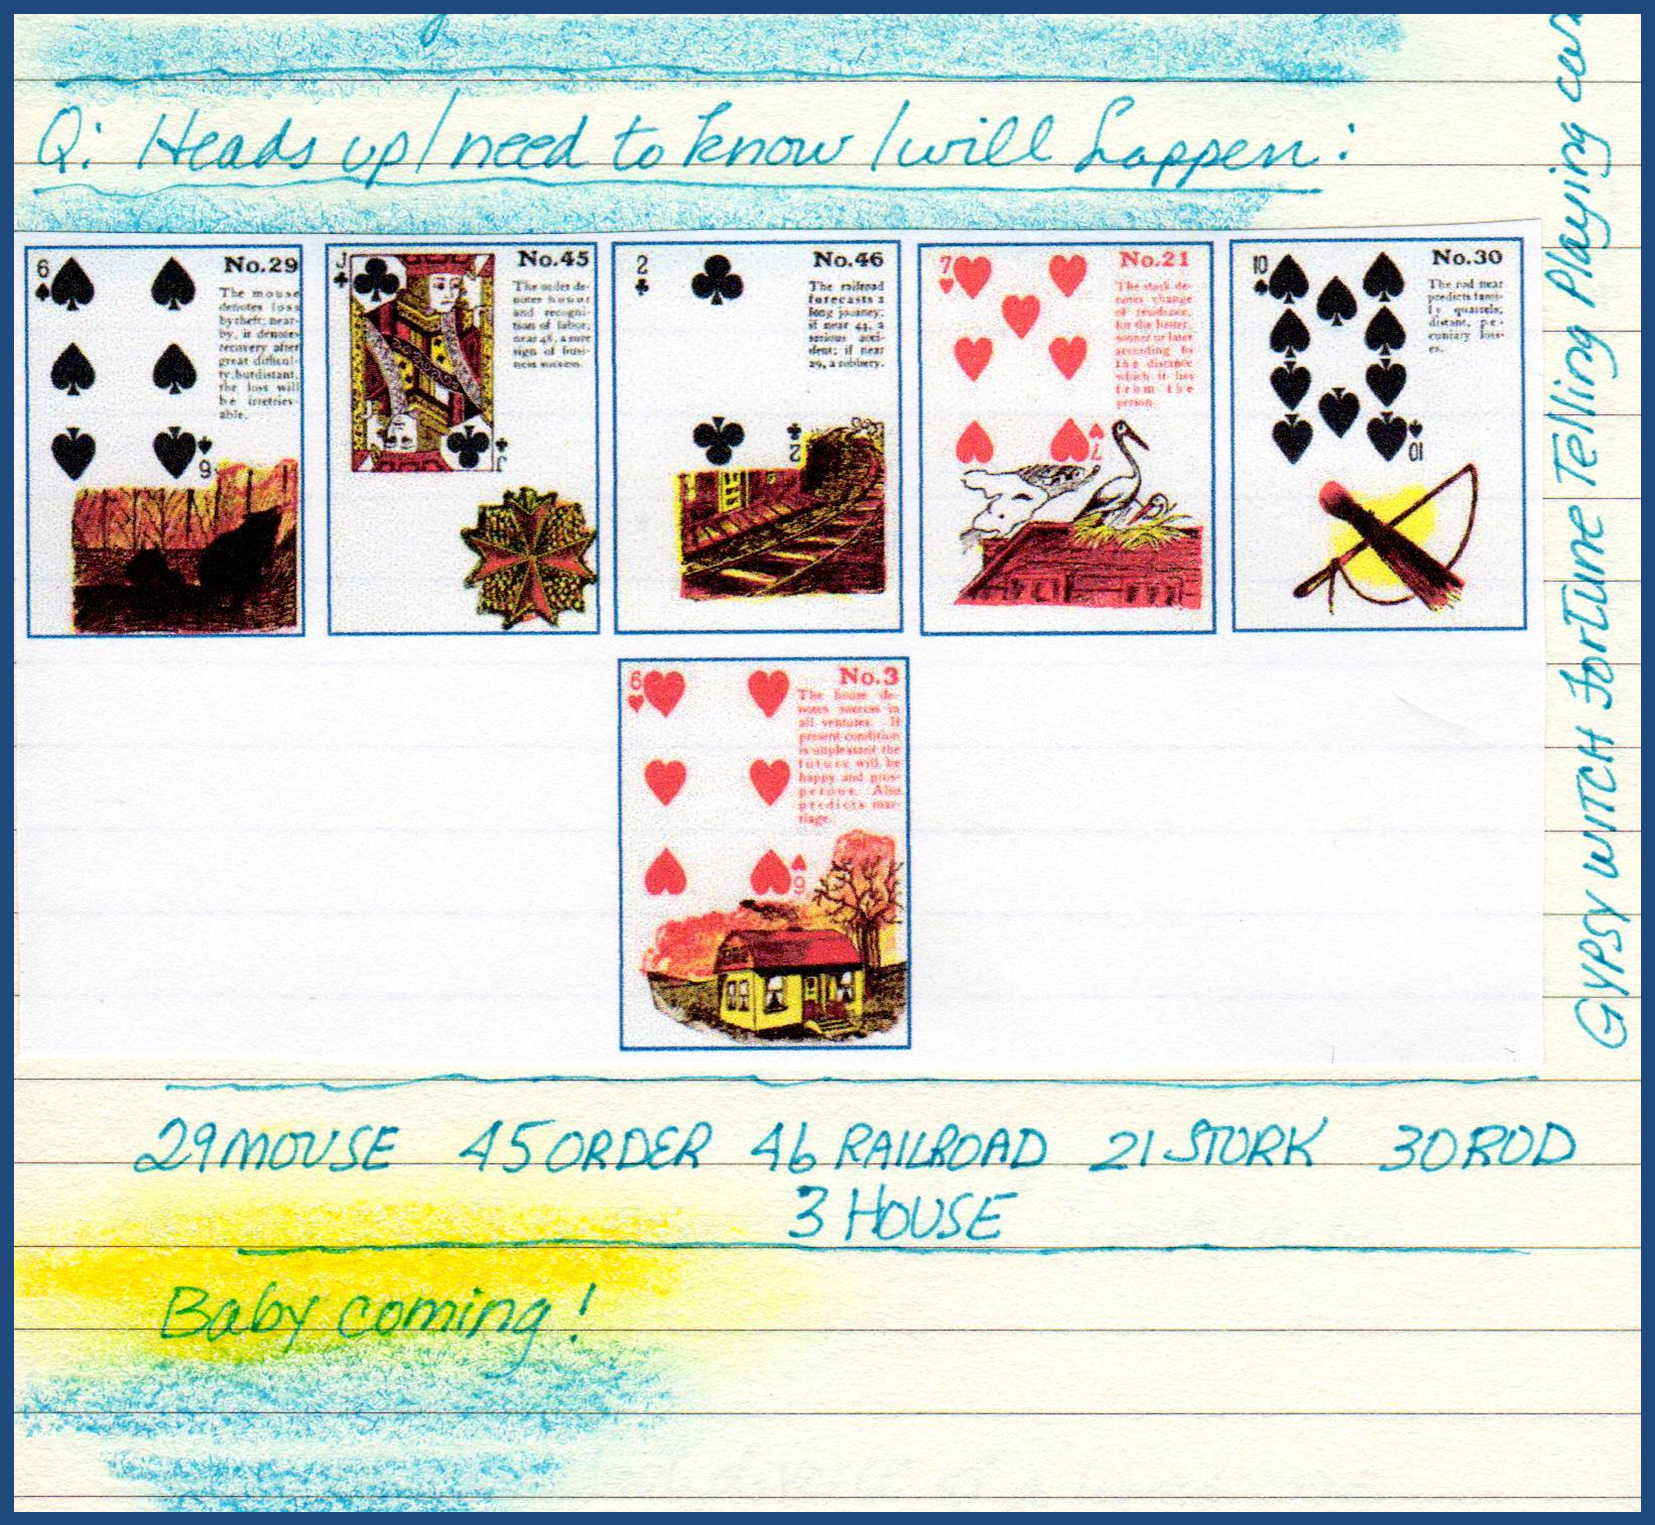 Journal entry showing Gypsy Witch Fortune Telling Playing Cards prediction of baby's birth: 29 Mouse (6 of Spades) - 45 Order (Jack of Clubs) - 46 Railroad (2 of Clubs) - 21 Stork (7 of Hearts) - 30 Rod (10 of Spades) - 3 House (6 of Hearts) http://livingwithcards.com